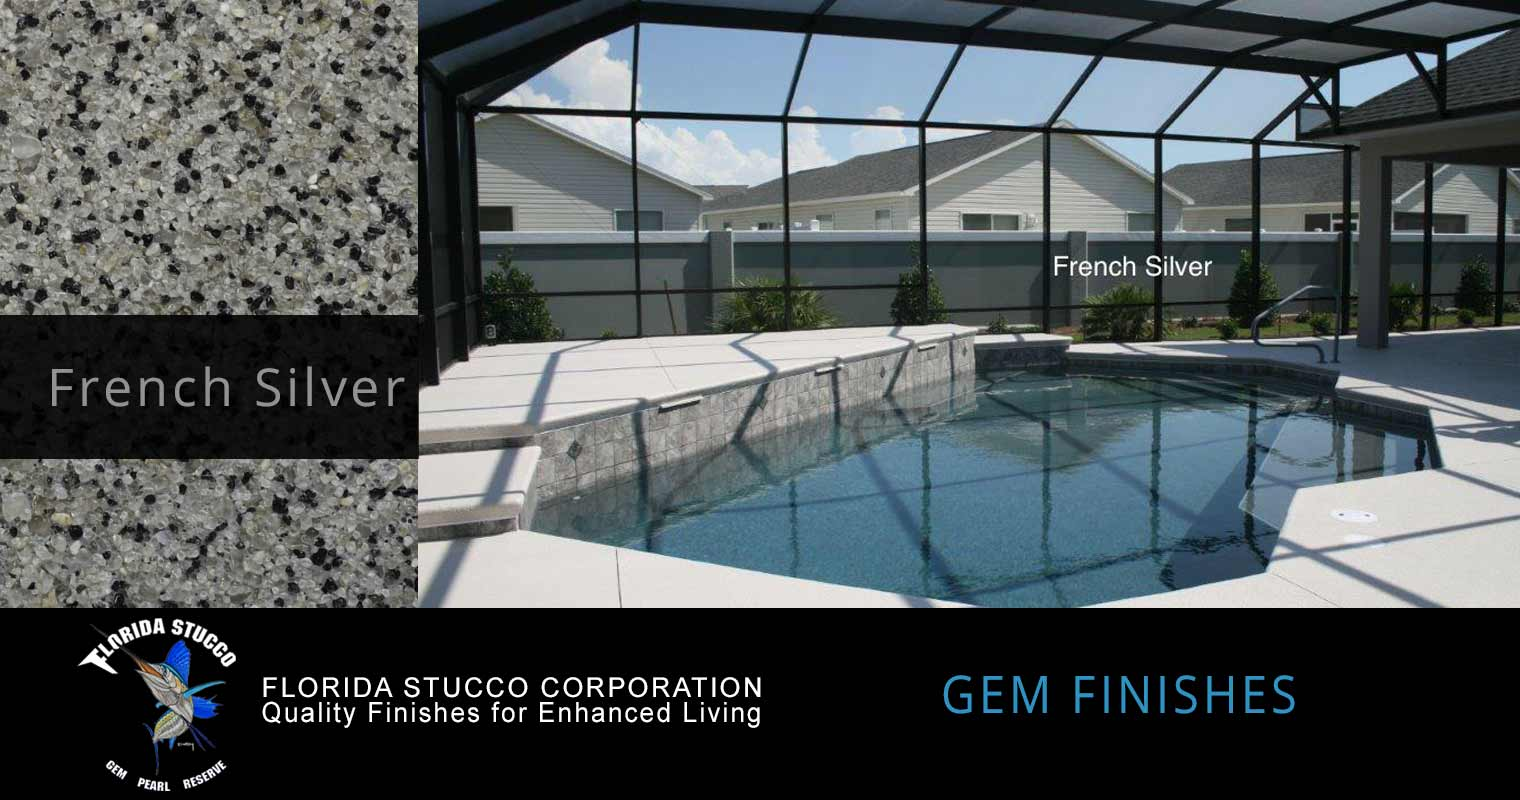 Florida Stucco - French Silver Plastering Finish Pool Sample 1